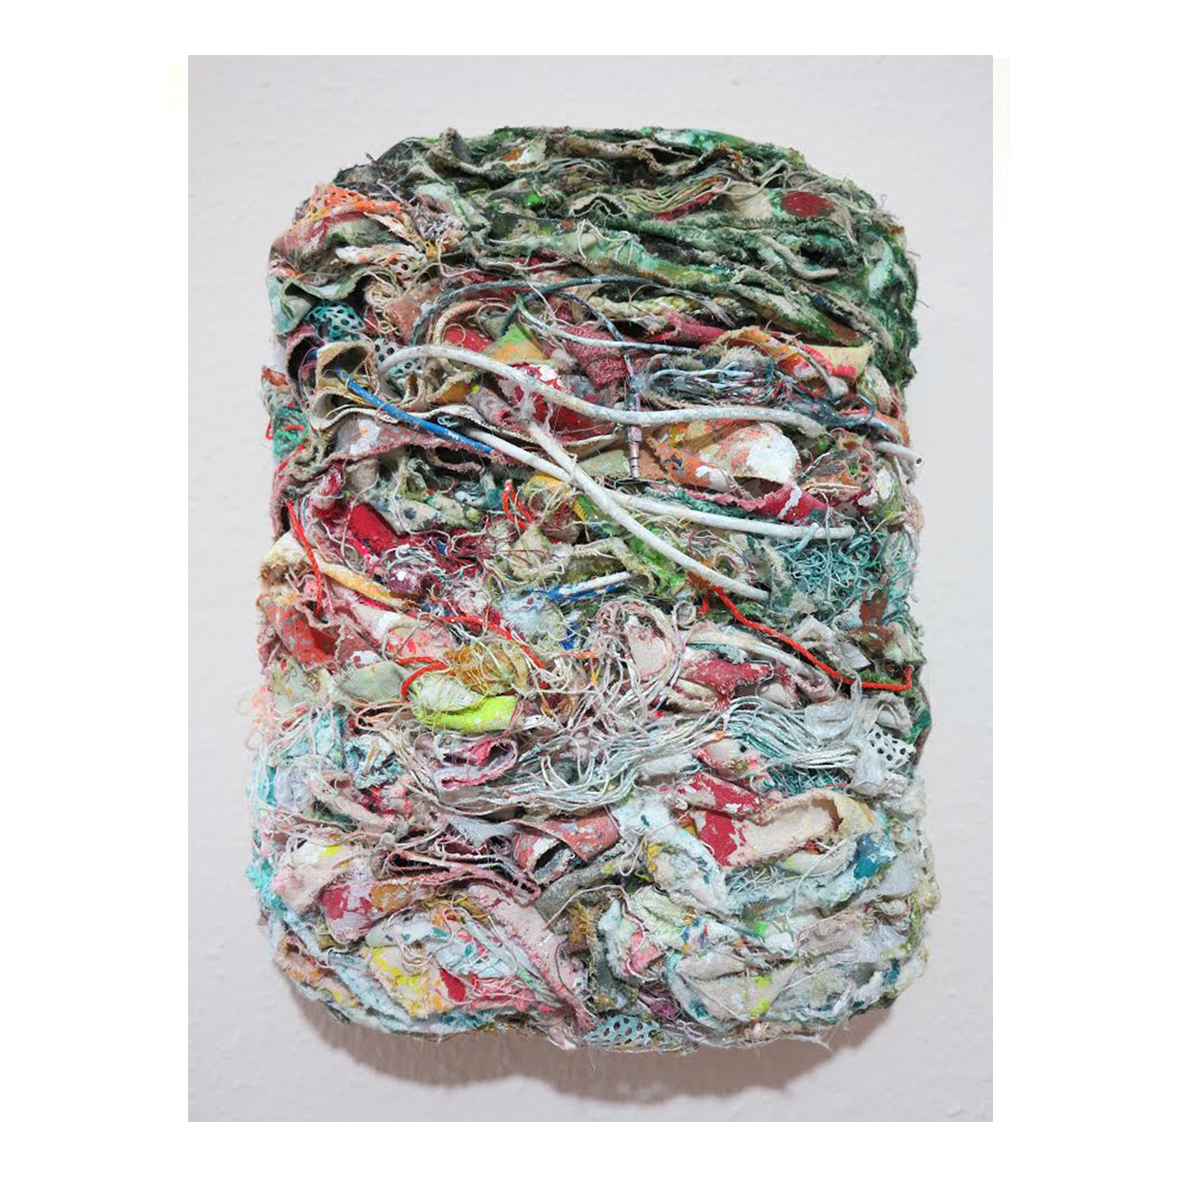 Christopher Stead JUNGLE (2020) Alkyd resin, acrylic, cotton, polyester, polyethylene & electrical wire.  40 x 30 x 7cm.